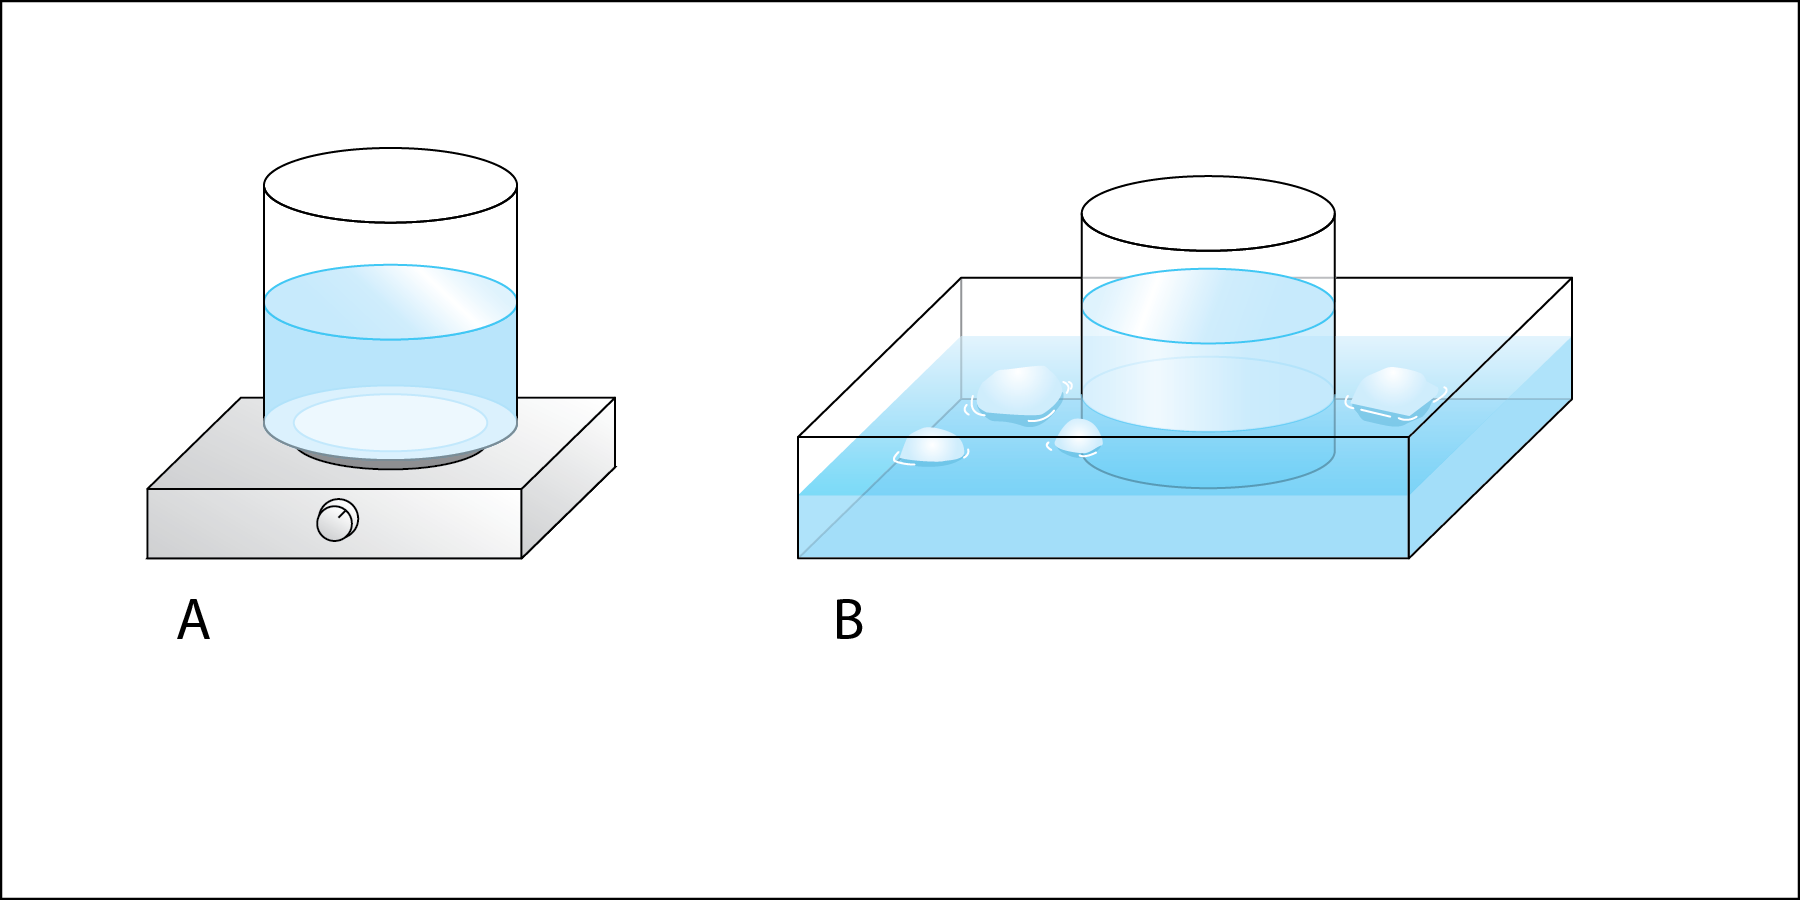 <p><strong>Fig. 2.4</strong>. (<strong>A</strong>) Place a beaker of water on a hot plate to create hot water.(<strong>B</strong>) Place water and ice cubes in a tray to create an ice bath. Place a beaker of water in the ice bath to create cold water.</p>